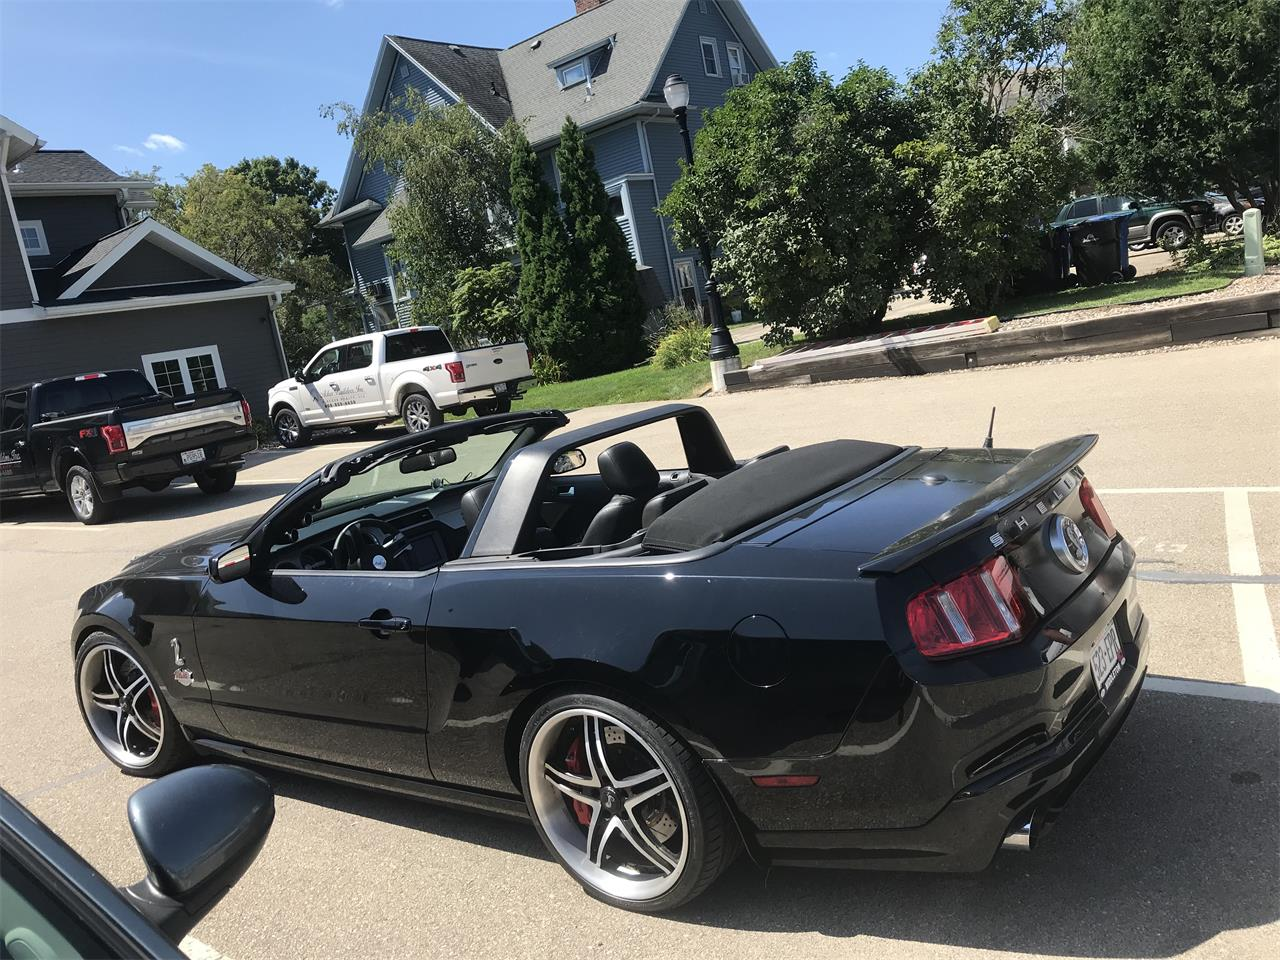 2010 Ford Mustang GT (CC-1256470) for sale in Waunakee, Wisconsin